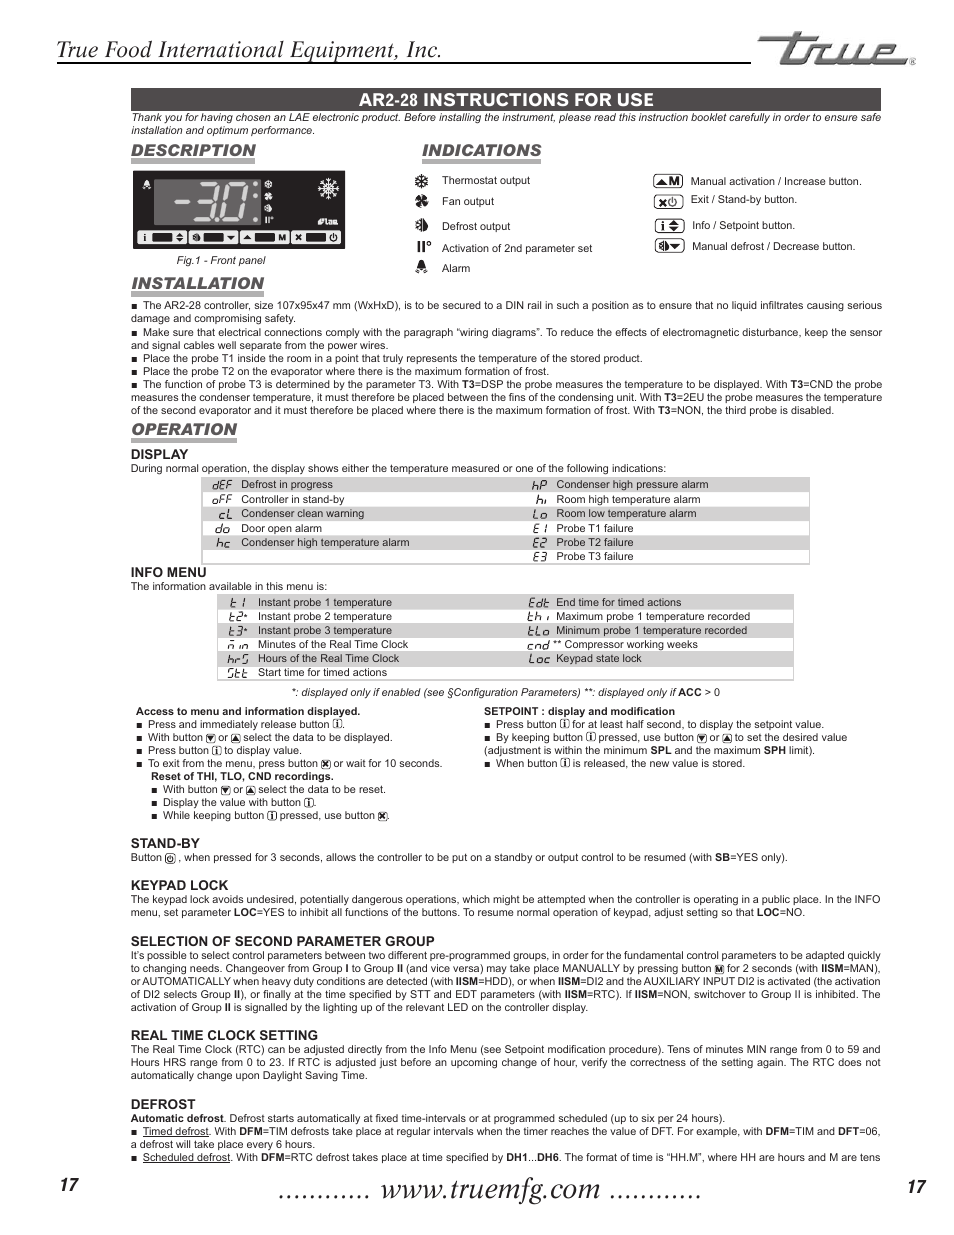 True Food International Equipment Inc Ar2 28 Instructions For Use Wiring Diagrams Description Indications